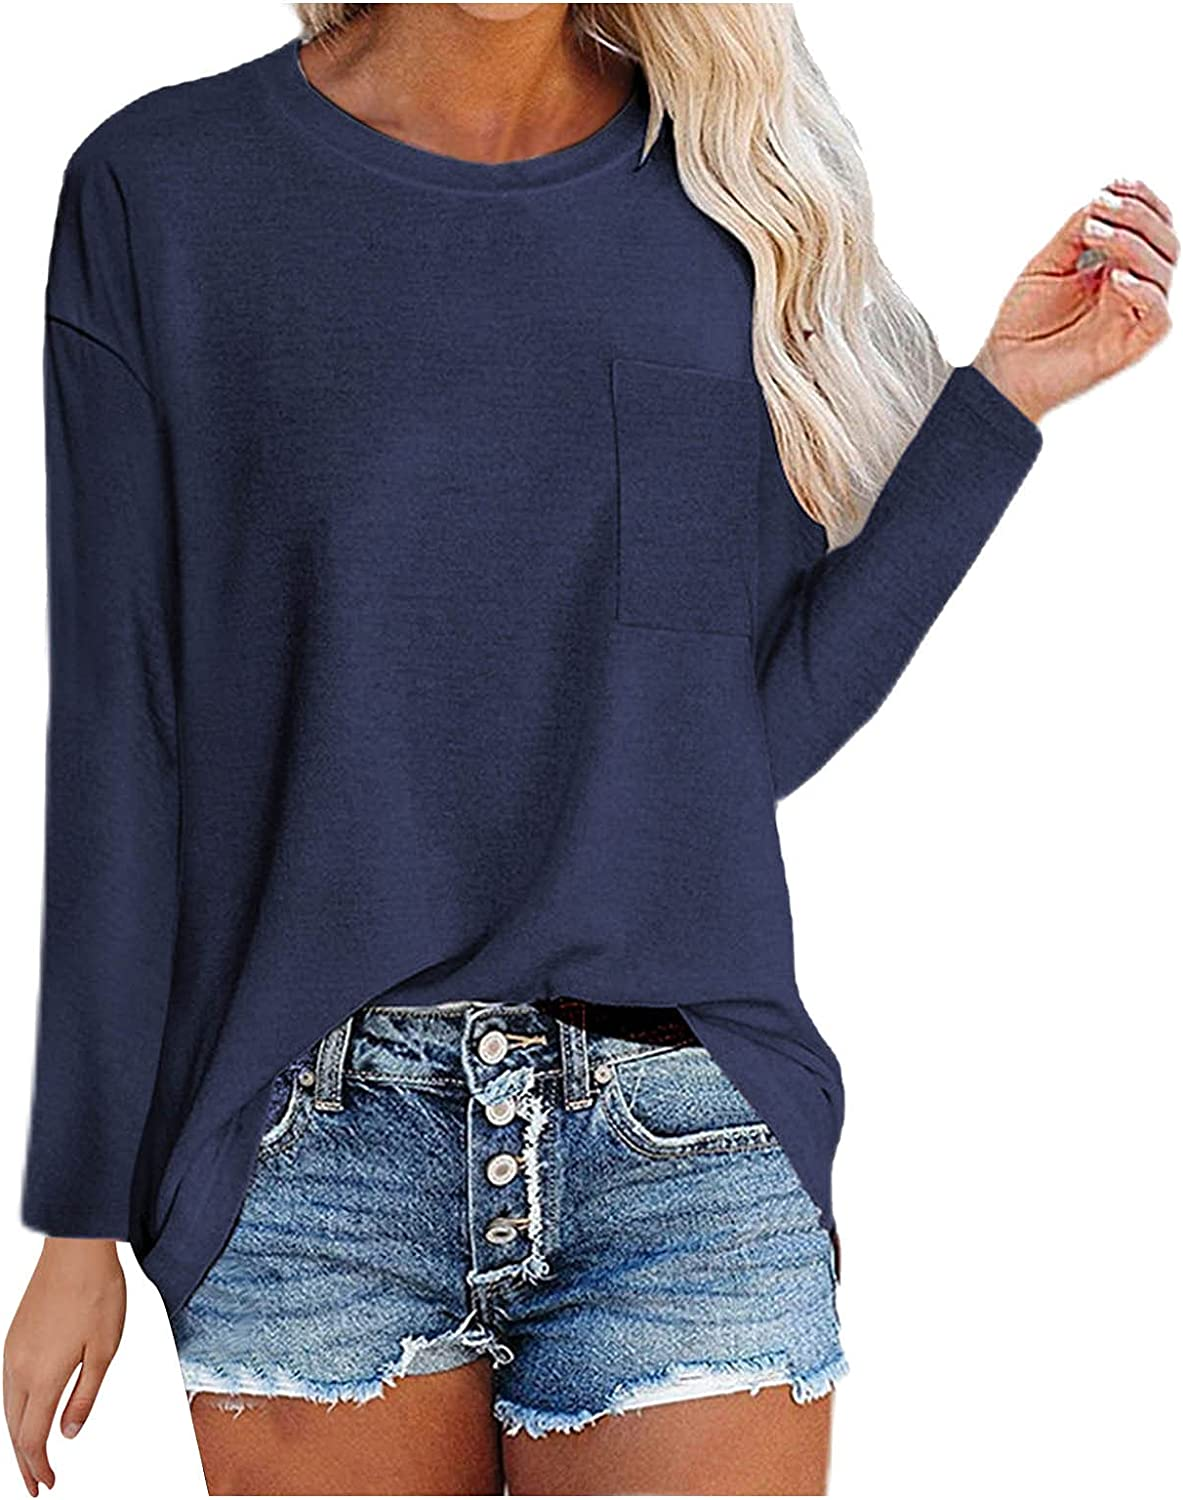 WYBAXZ Loose Casual Crew Neck Tops for Women, Long Sleeve Pullover Loose Fit Tunic Baggy Comfy Blouse Sweatshirt Tops